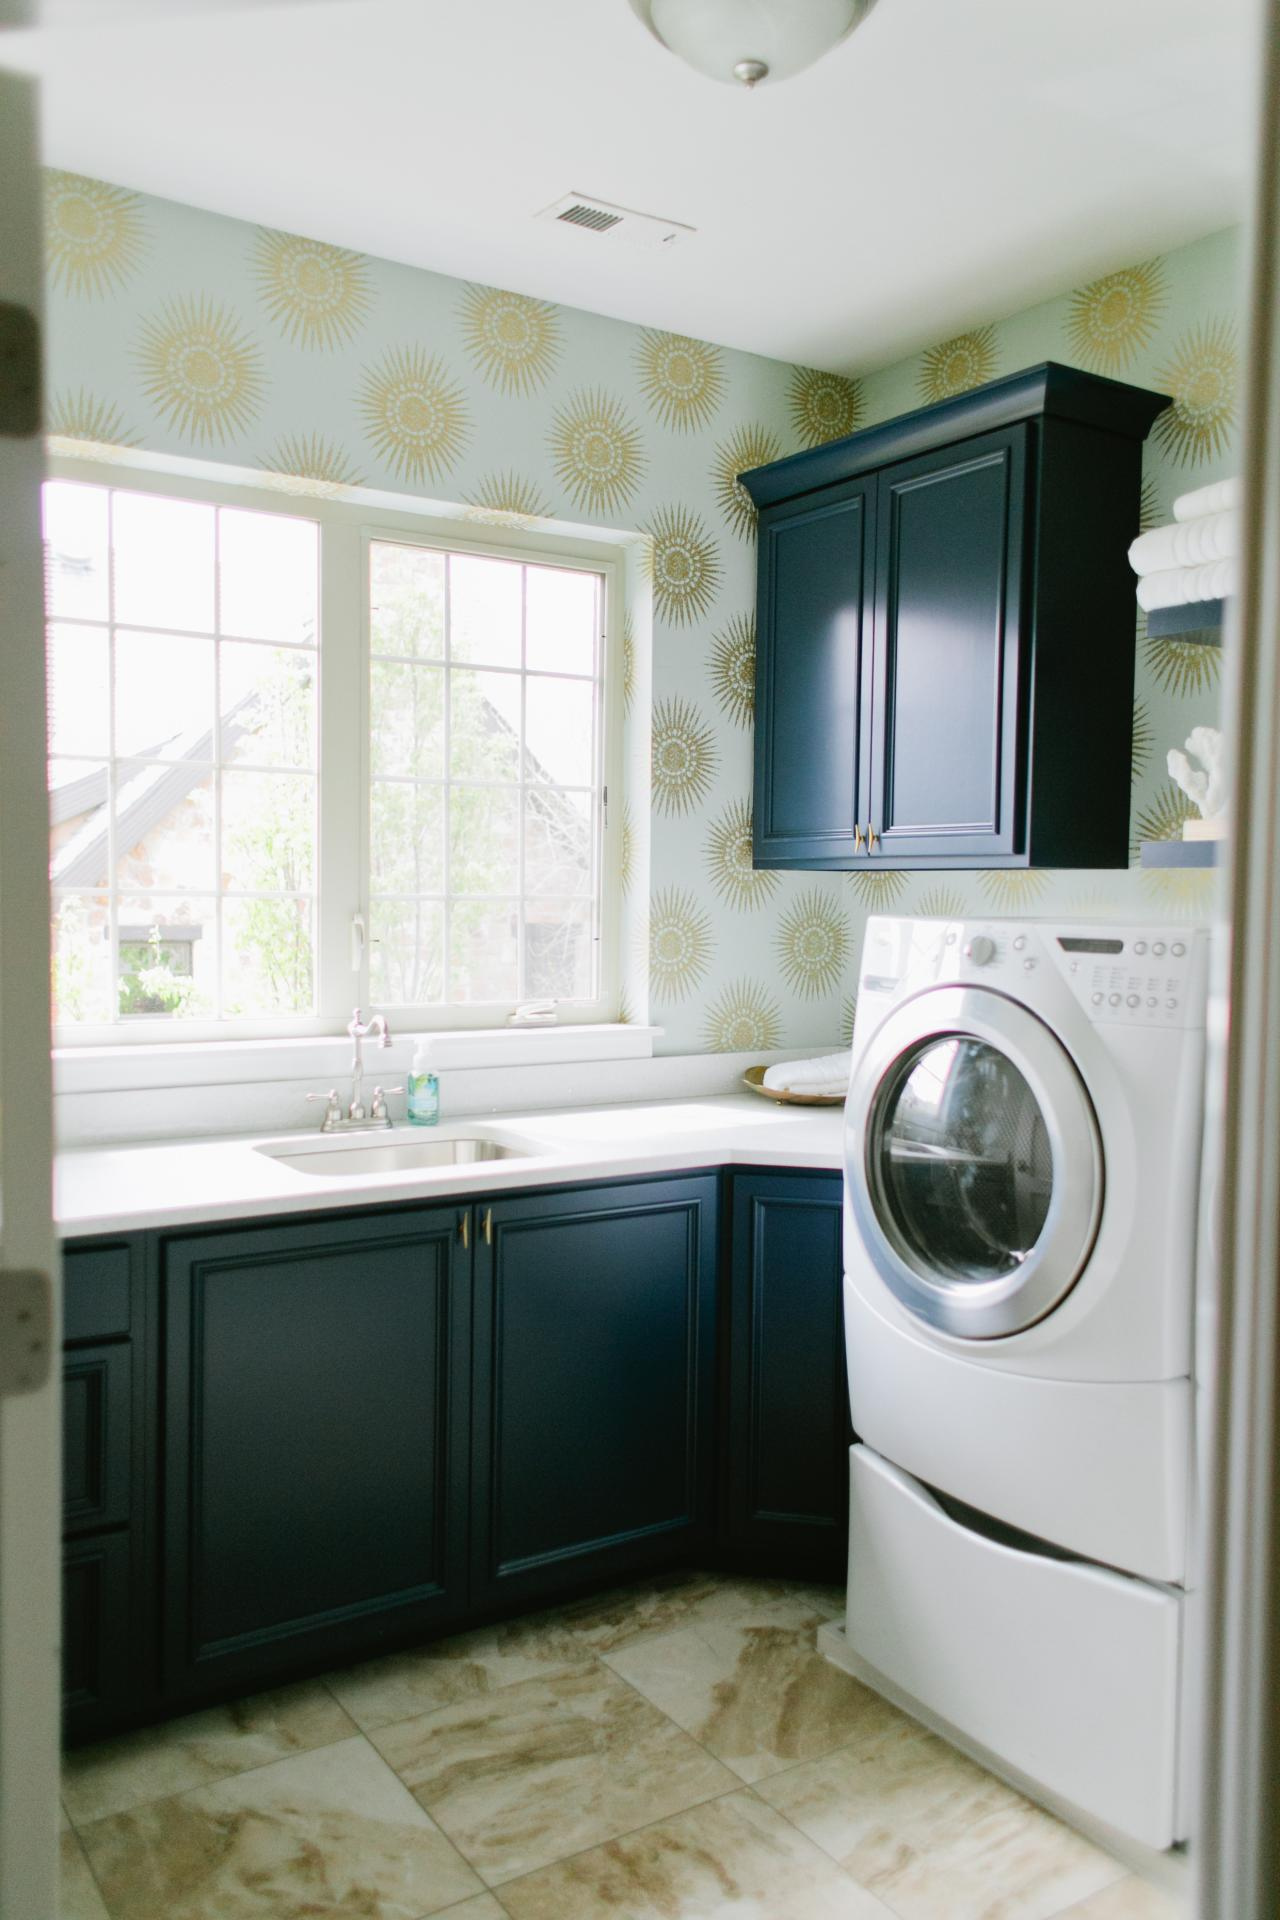 10 Clever Storage Ideas for Your Tiny Laundry Room | HGTV ... on Laundry Room Organization Ideas  id=39862